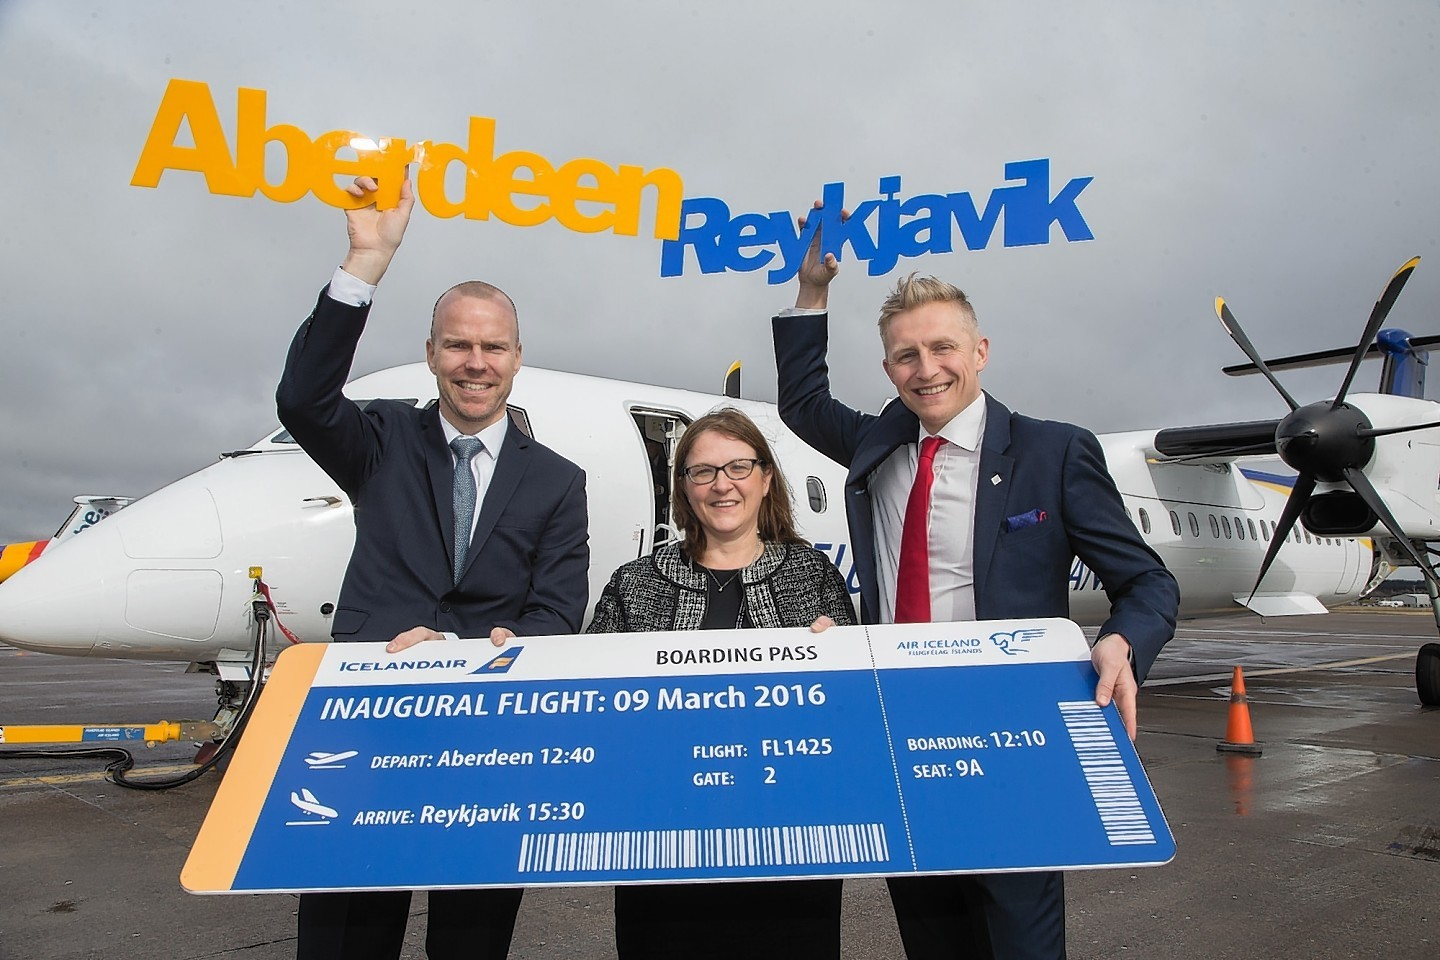 Aberdeen International Airport managing director Carol Benzie with Air Iceland chief executive Arni Gunnarsson, left, and Icelandair general manager Andres Jonsson